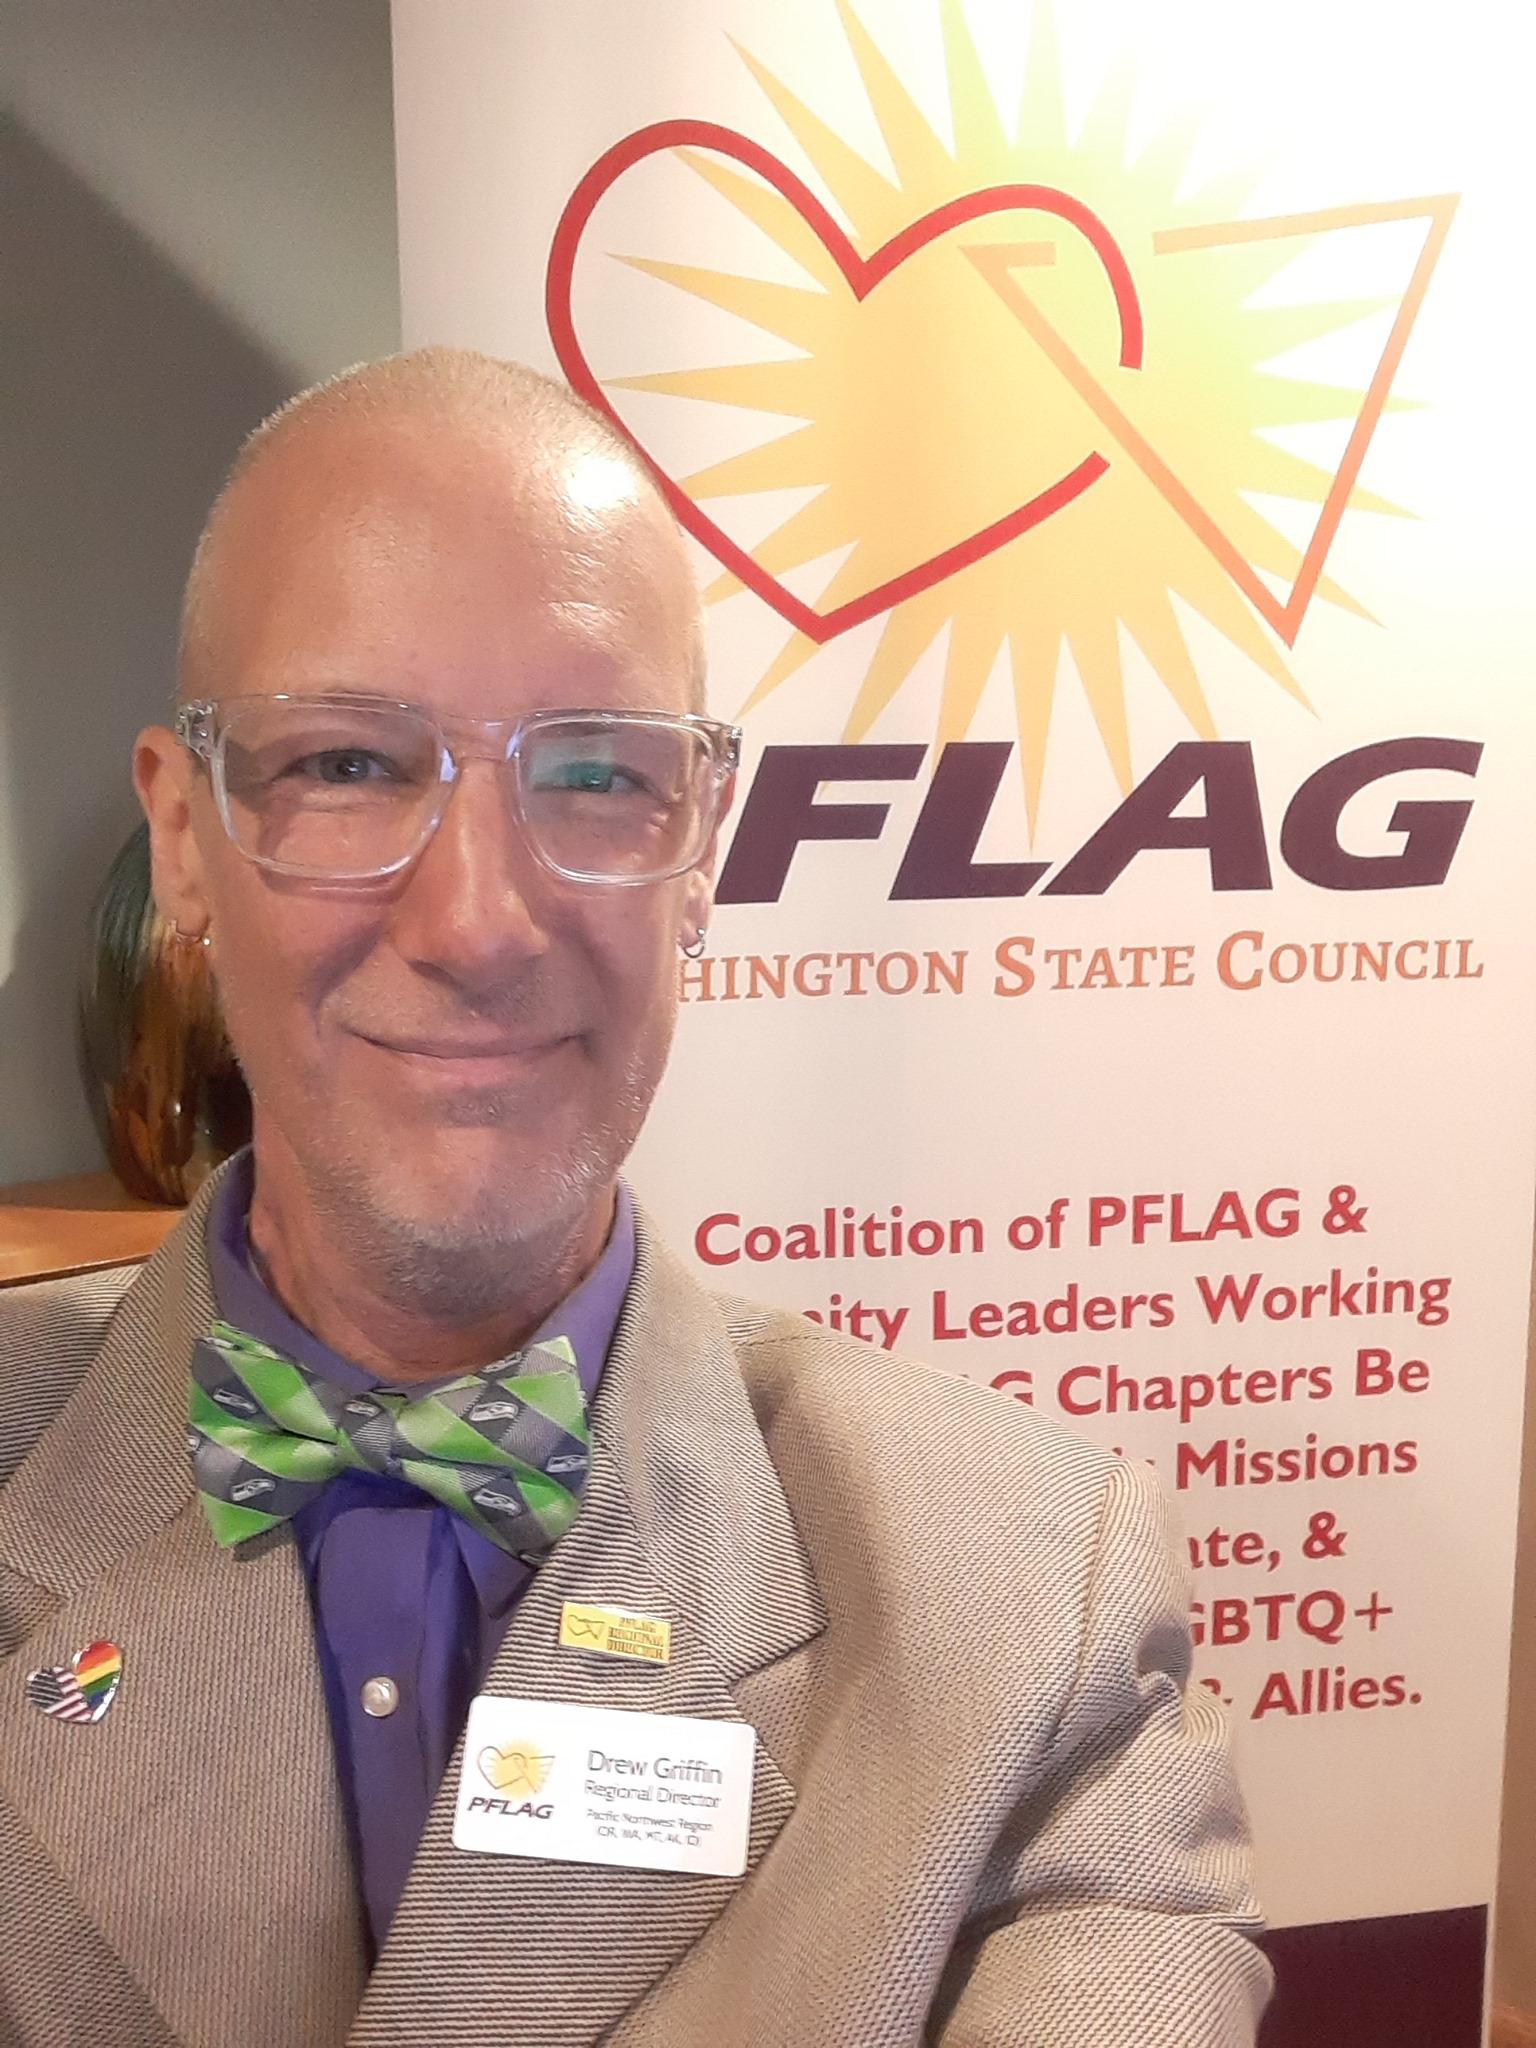 Drew Griffin wears a suit and bow tie and stands in front of PFLAG Washington State C</body></html>